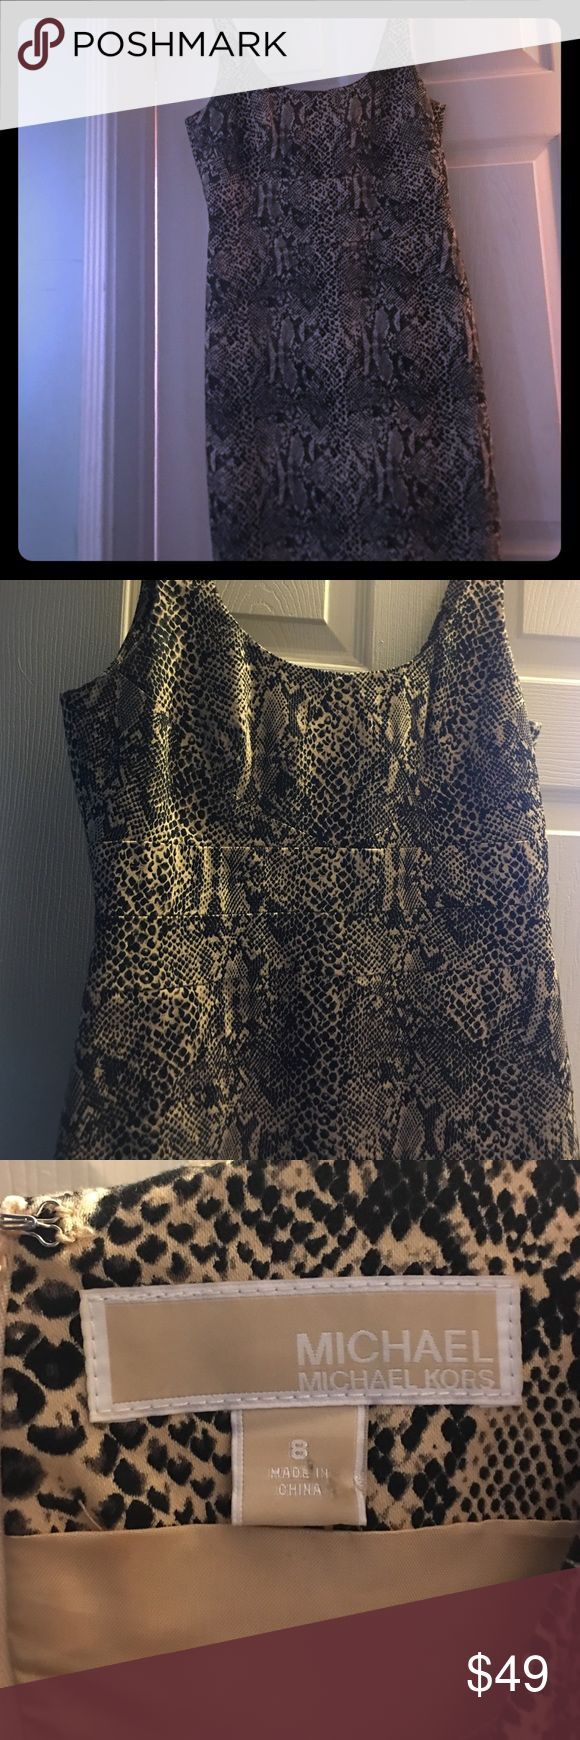 Michael Kors dress!  Must have  animal print dress I love this reptile design  dress !  Very slimming & most comfortable on a night out! very versatile with how you wear it!! Perfect condition ! Loved gently! ‼️ ZERO TOLERANCE FOR LOW BALLING! Please have respect for us all here. You will be blocked if you low ball me! Thanks! ‼️ MICHAEL Michael Kors Dresses Midi